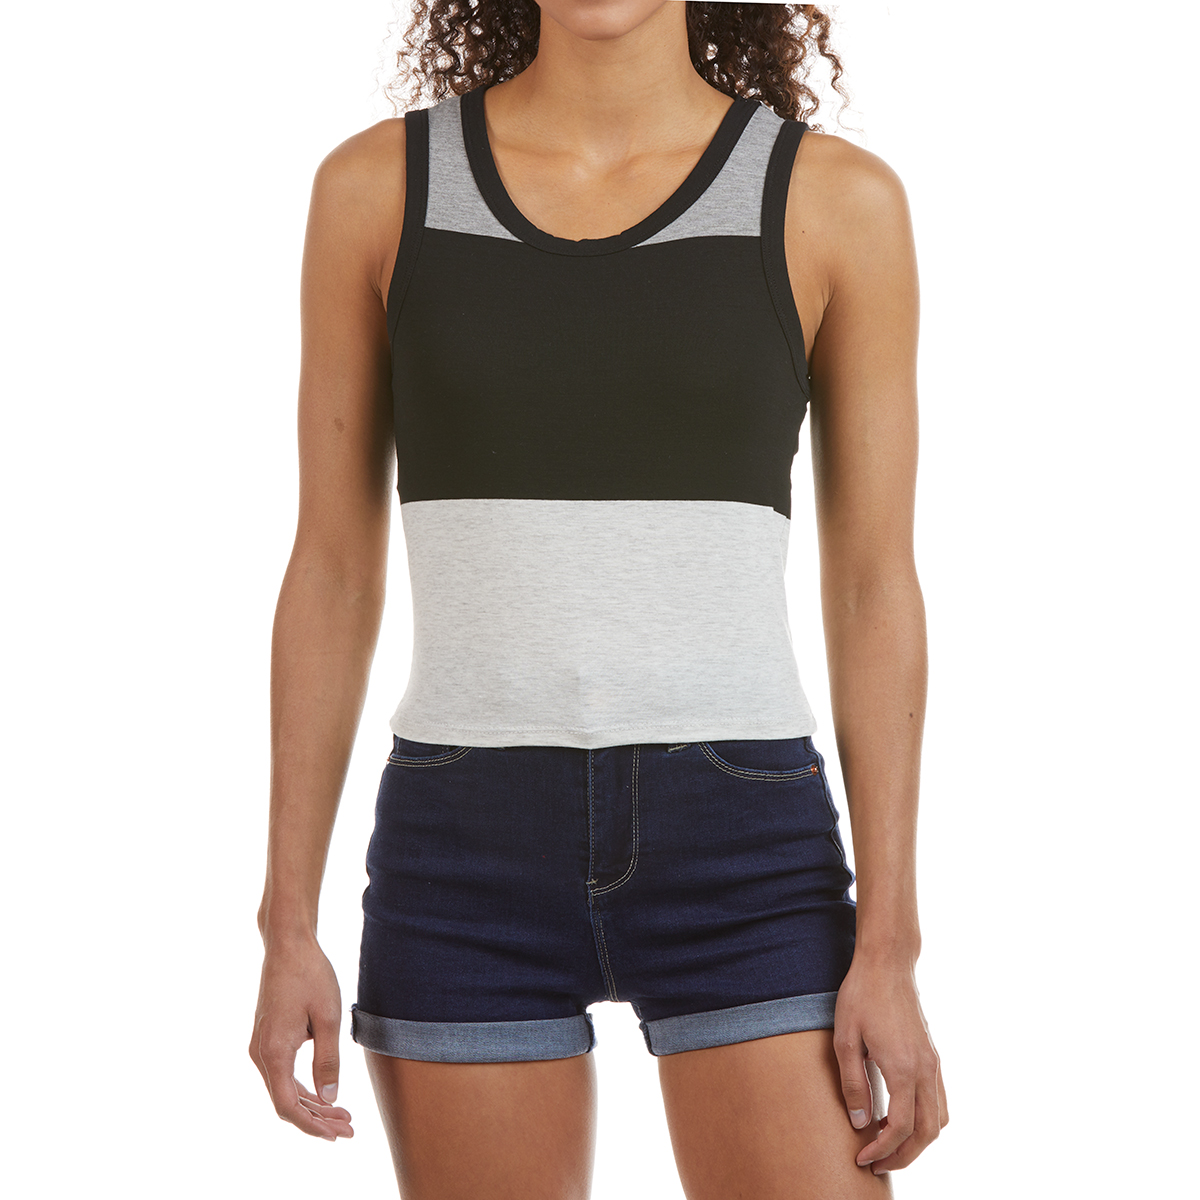 Poof Juniors' Sleeveless Colorblock Tank - Black, L